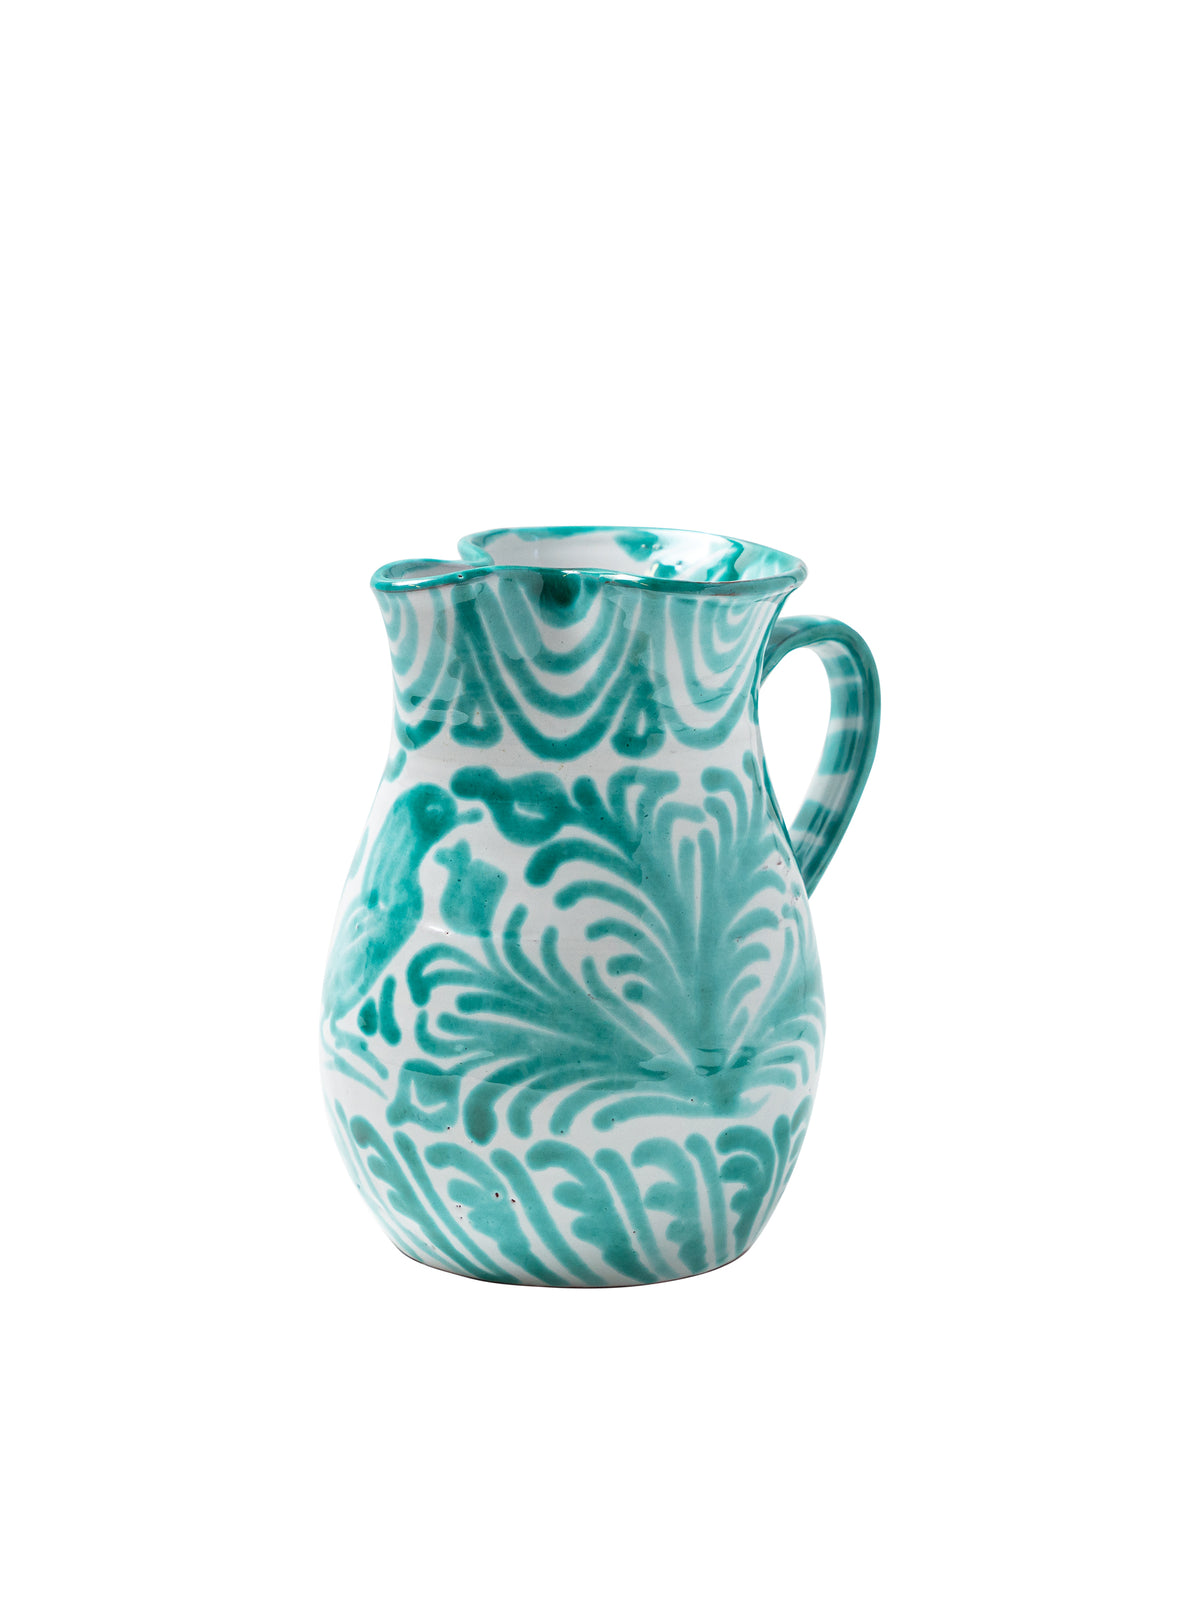 Casa Verde Small Pitcher with Hand-painted Designs